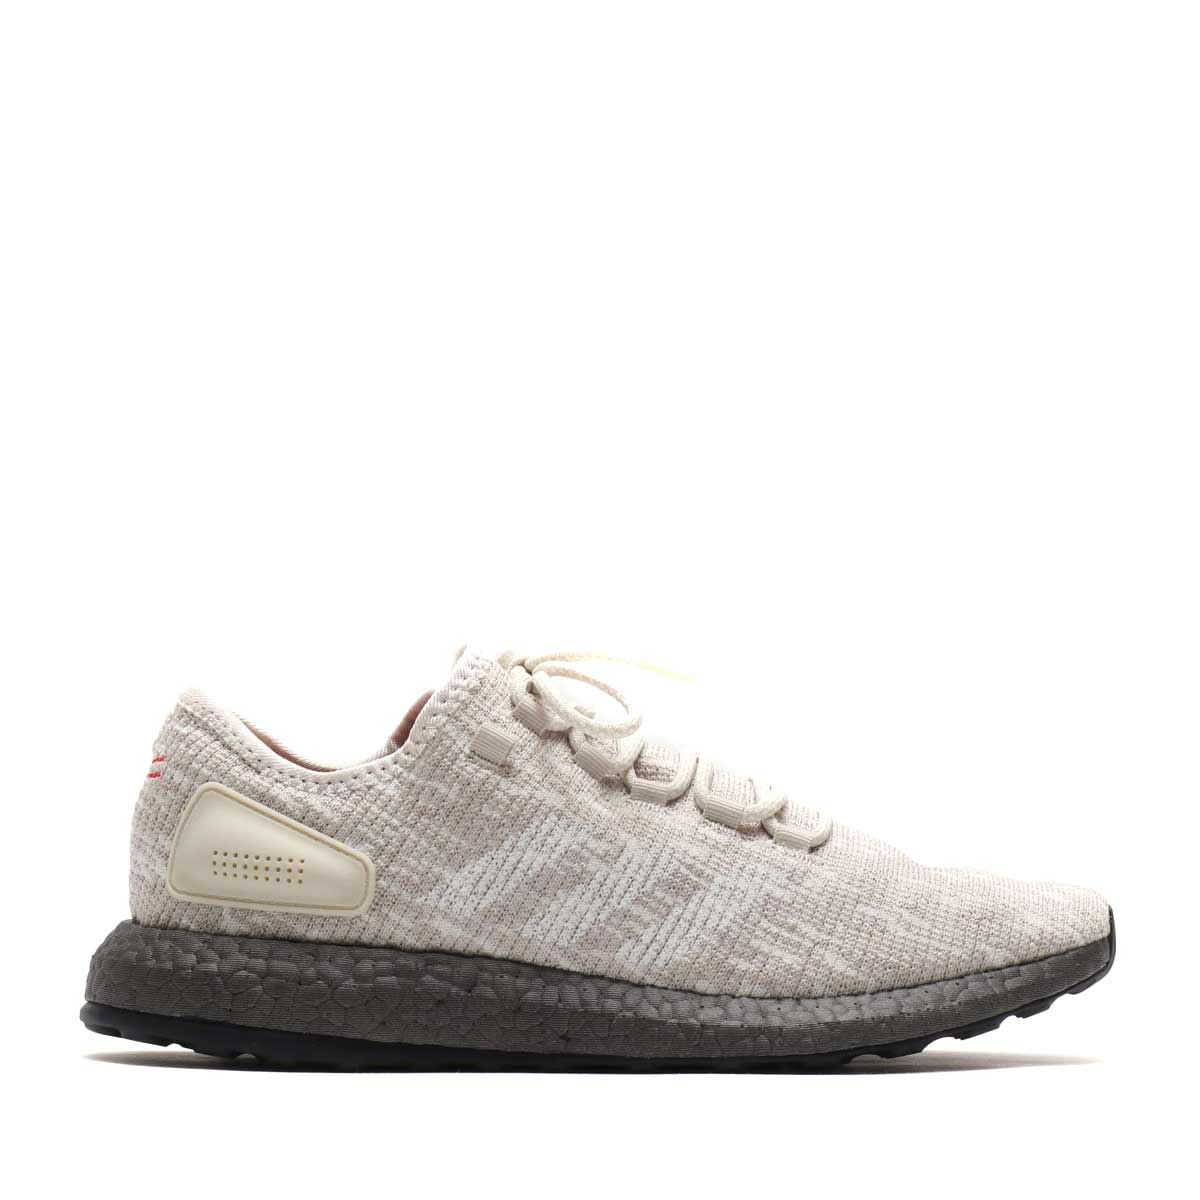 24f976f27 adidas PureBOOST (Adidas pure boost) CLEAR BROWN RUNNING WHITE SCARLET 18FW- S